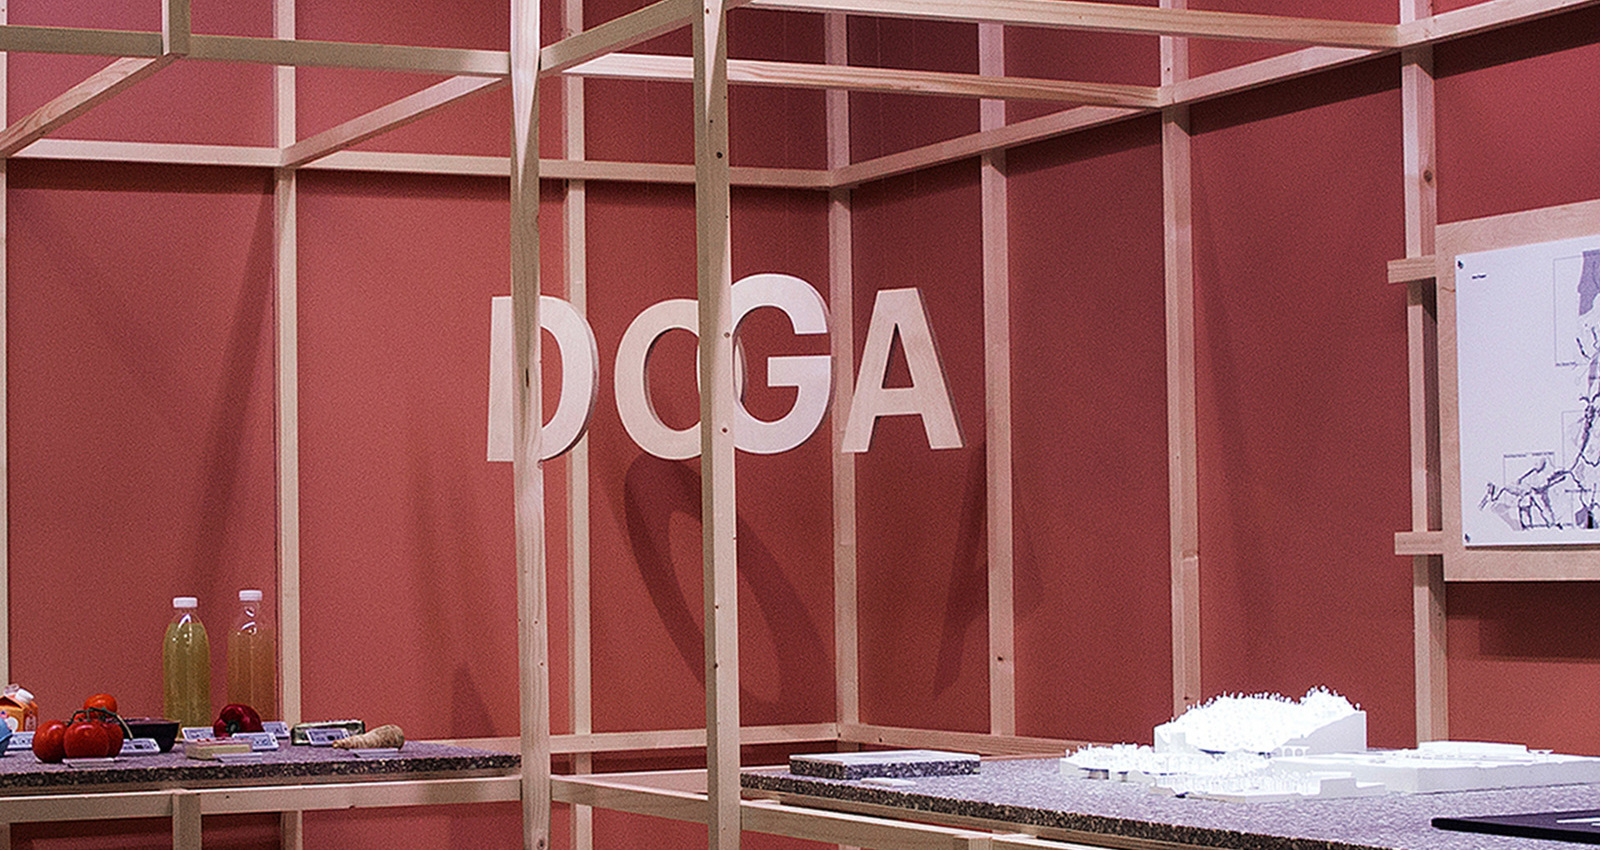 DOGA VISUAL IDENTITY